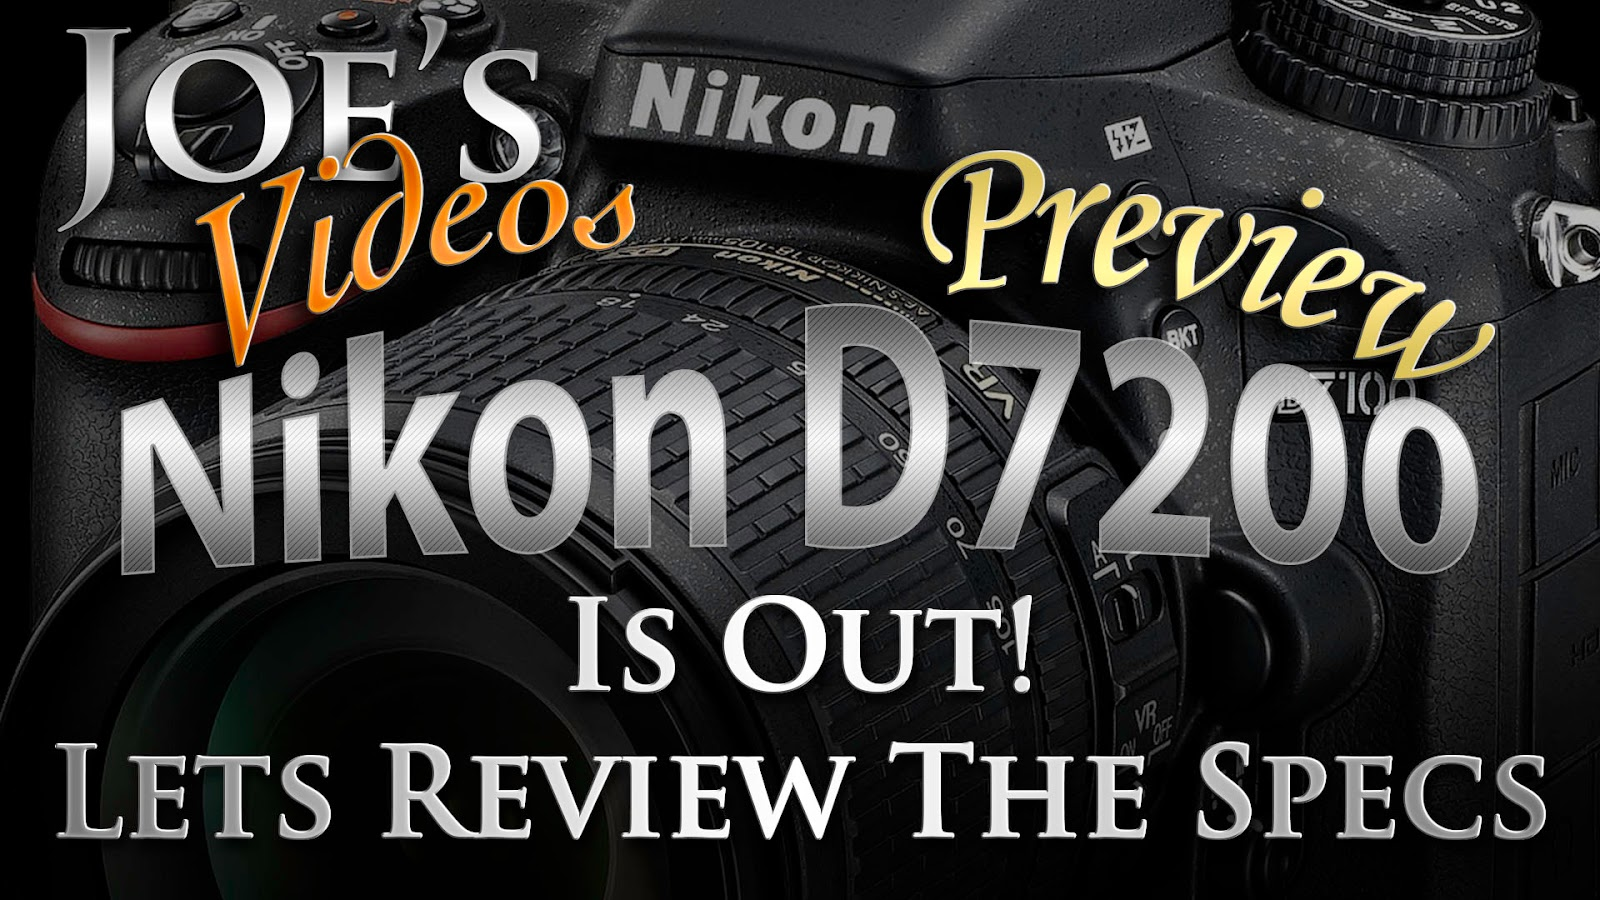 Nikon's D7200 Digital SLR Camera Is Out, Lets Review The Specs | Joe's Videos